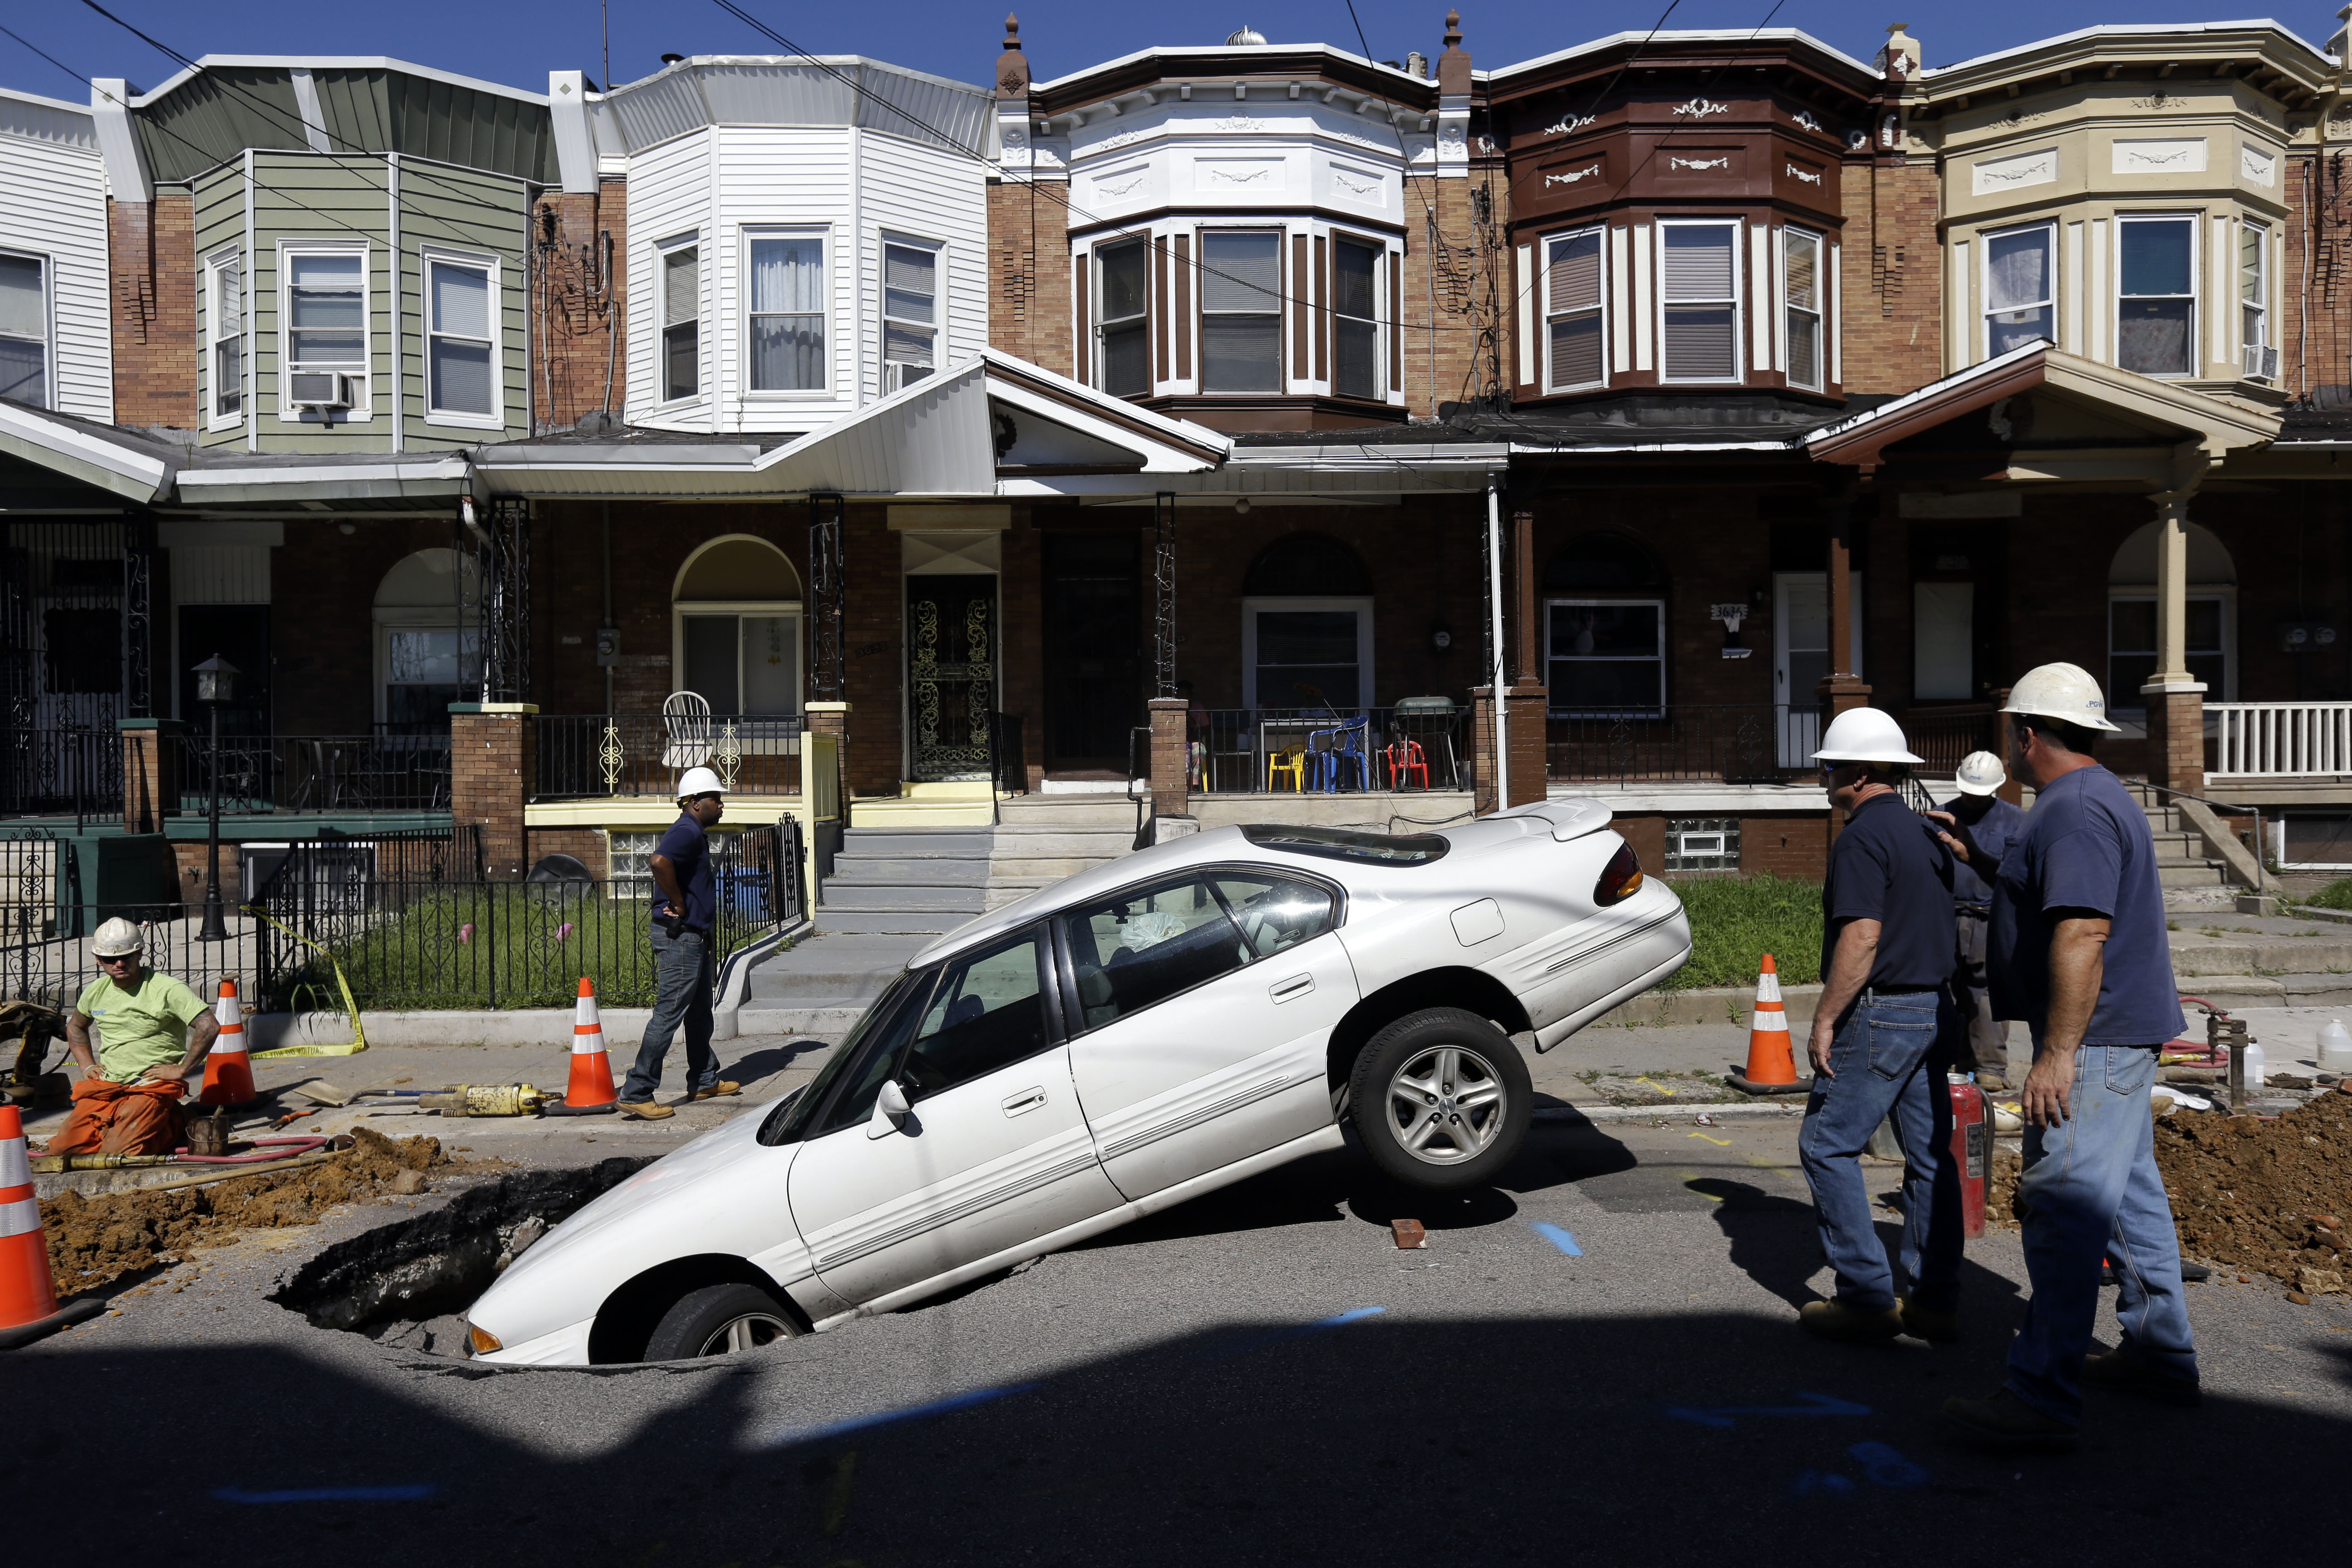 Workmen view a car with its front end in a sinkhole, July 30, 2013, in Philadelphia. PVI-TV reported the sinkhole opened up overnight on a street in the city's Hunting Park section, with the front of the car falling in the hole.